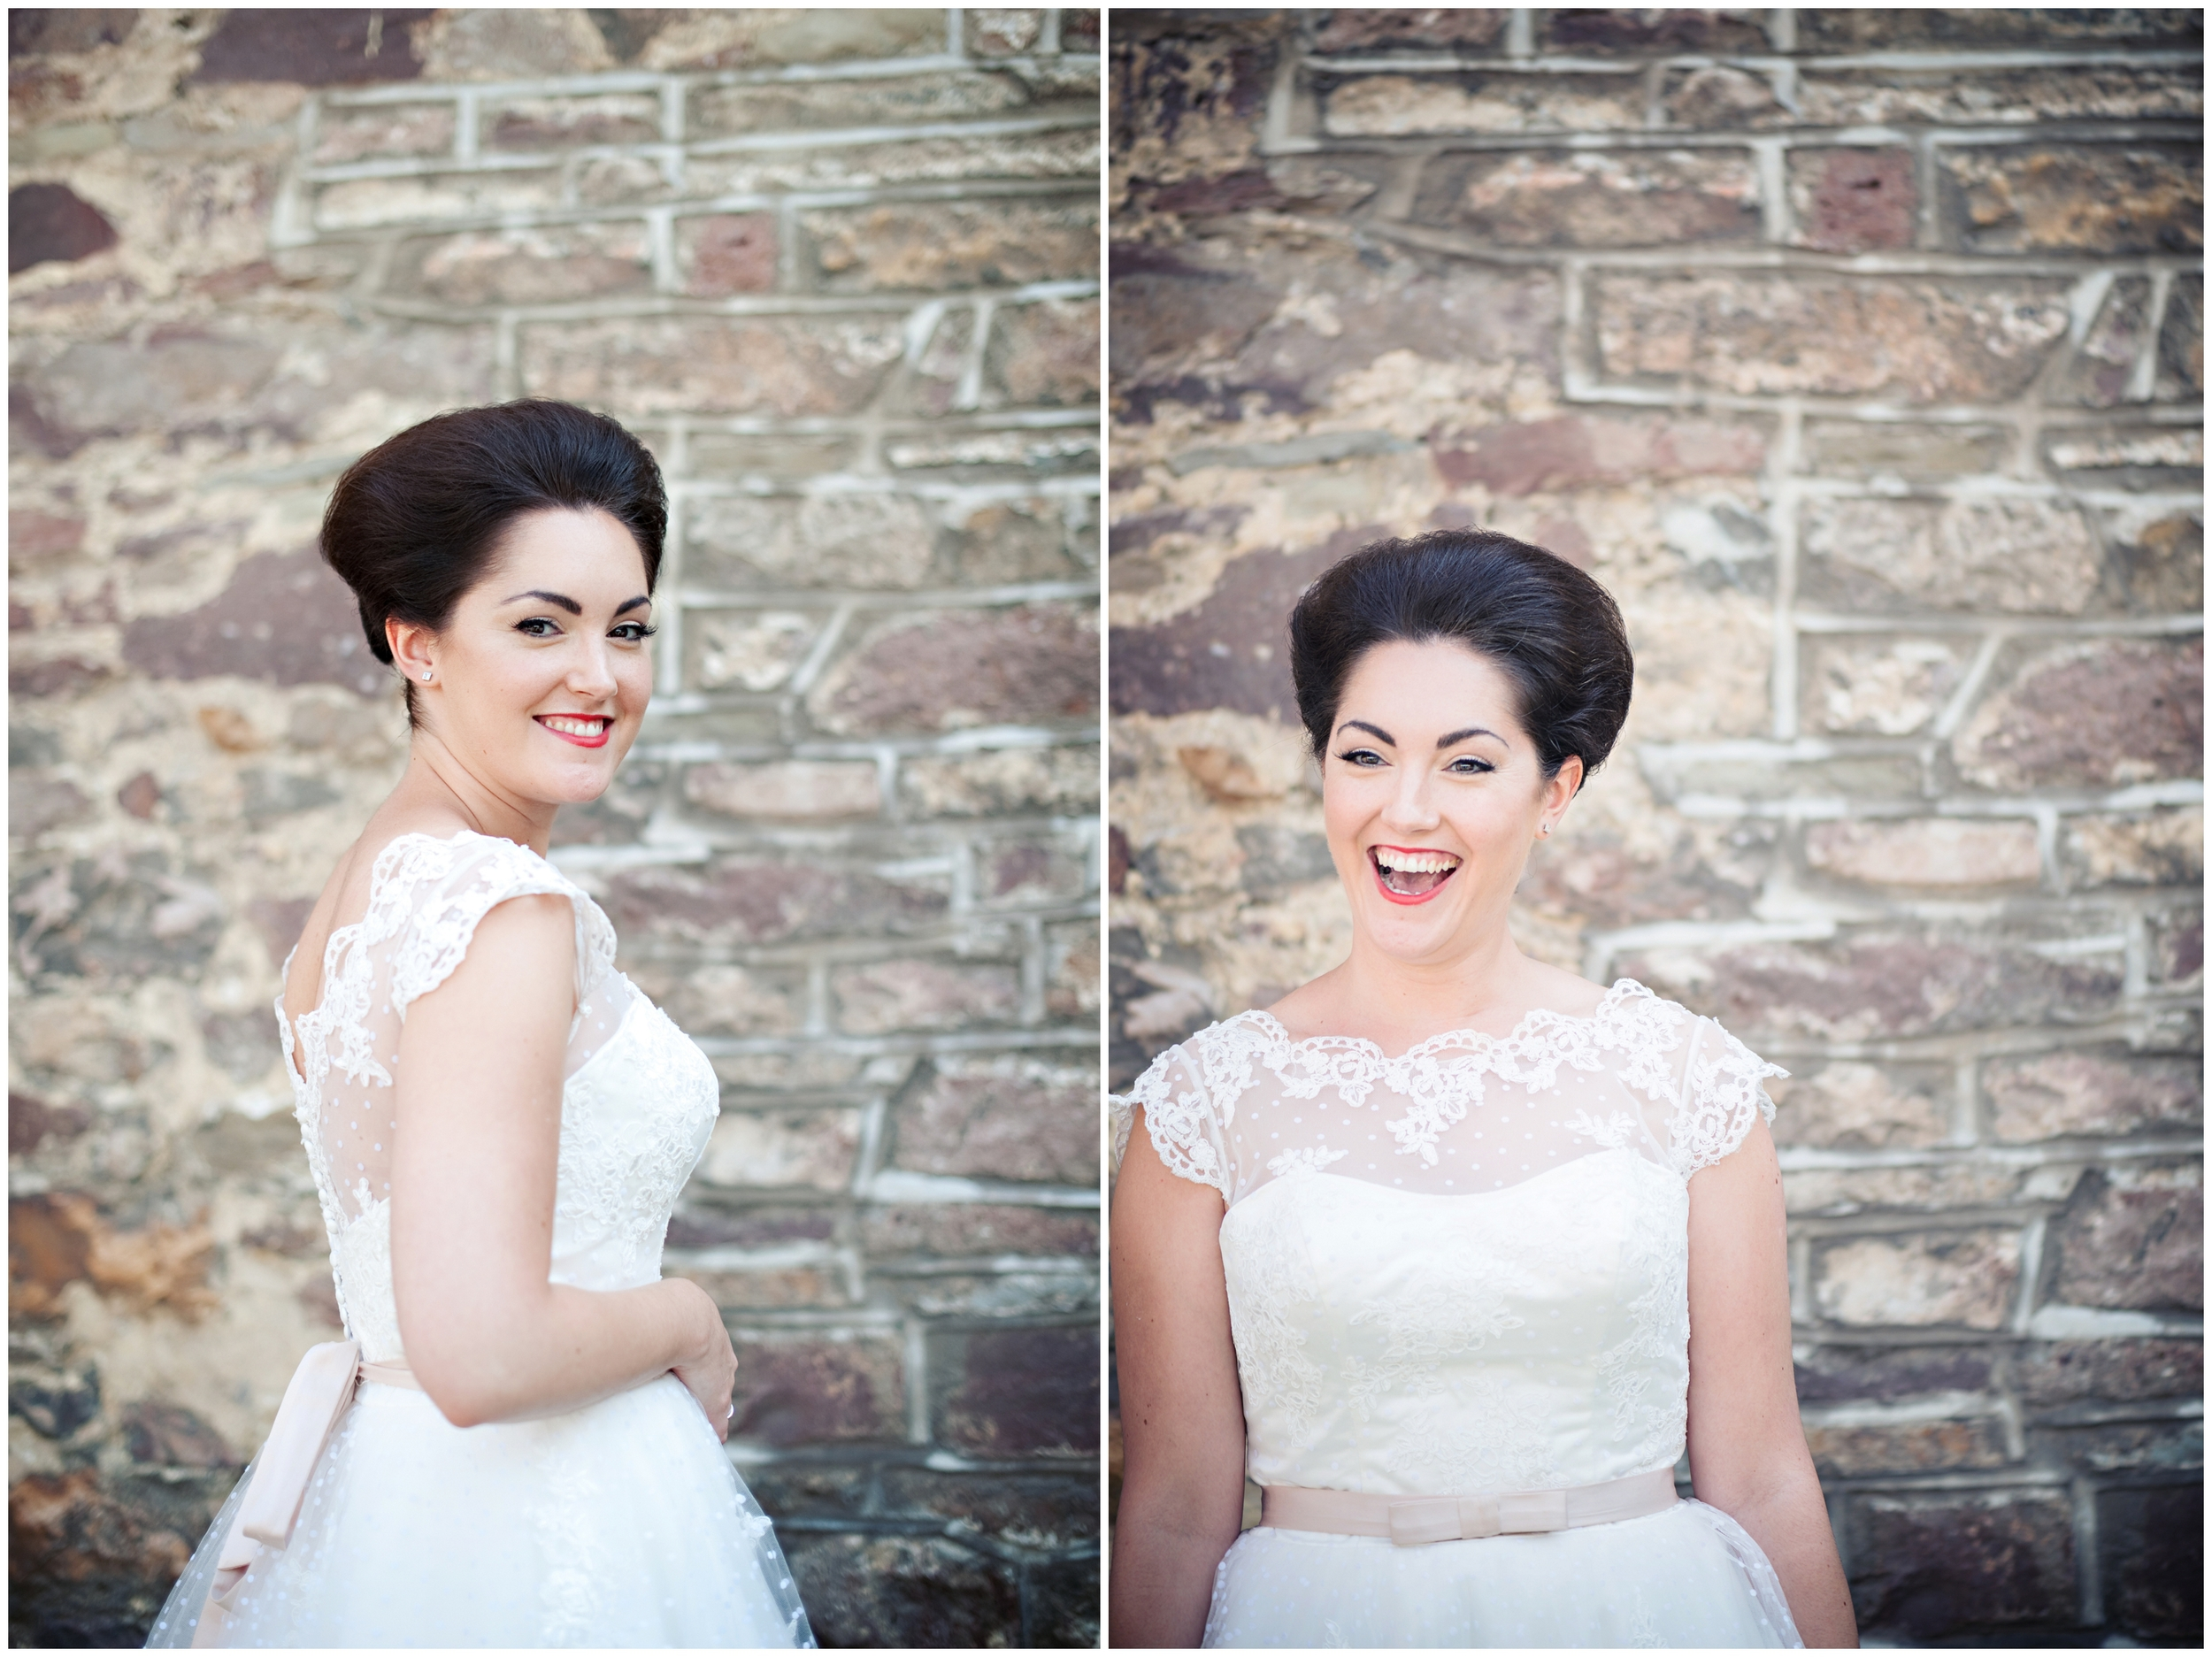 Catherine & Angharad Photography